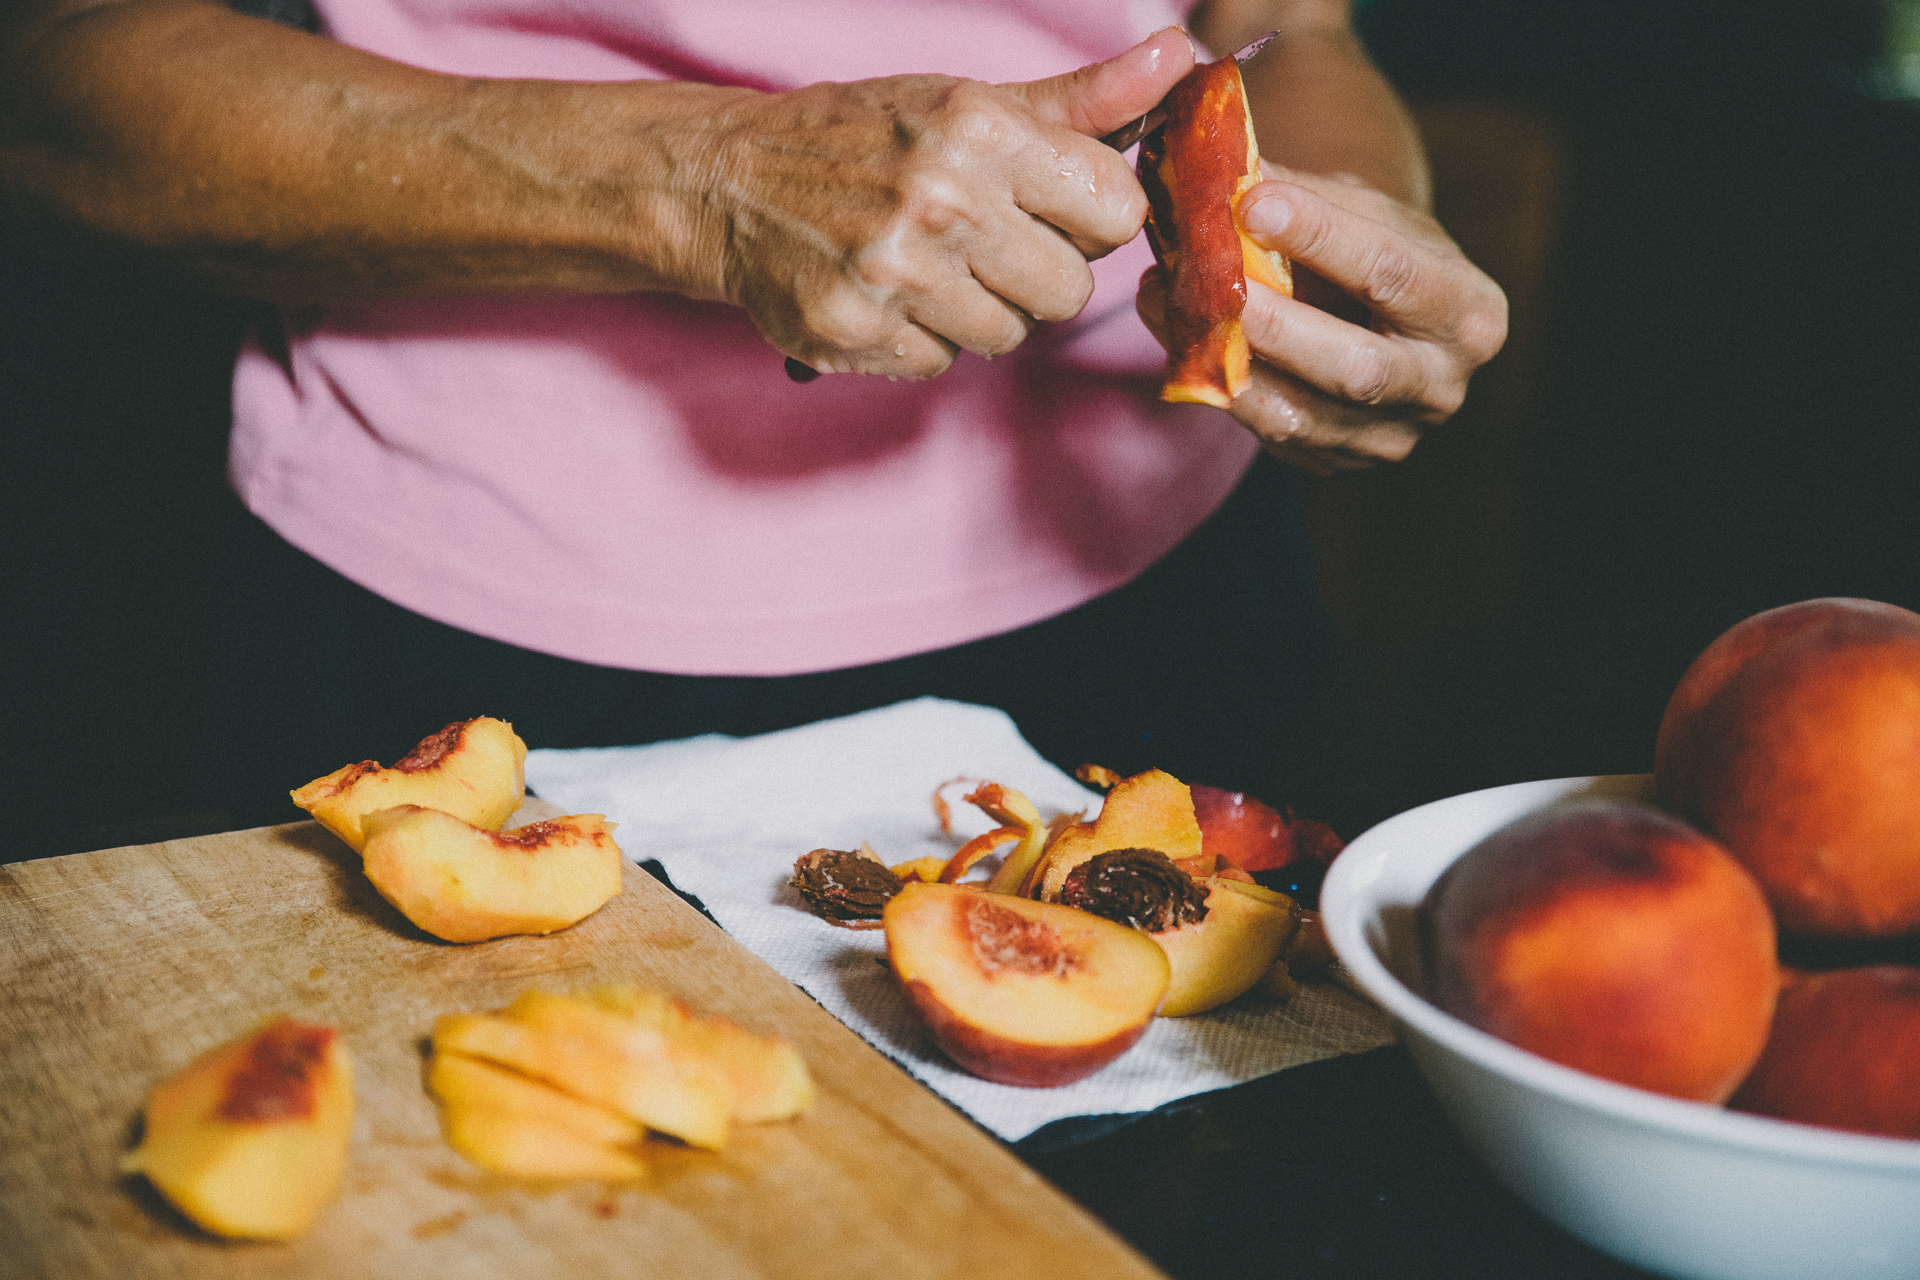 Thanks to Kristin's mom Lynn for doing the unenviable task of peeling and slicing all those peaches!